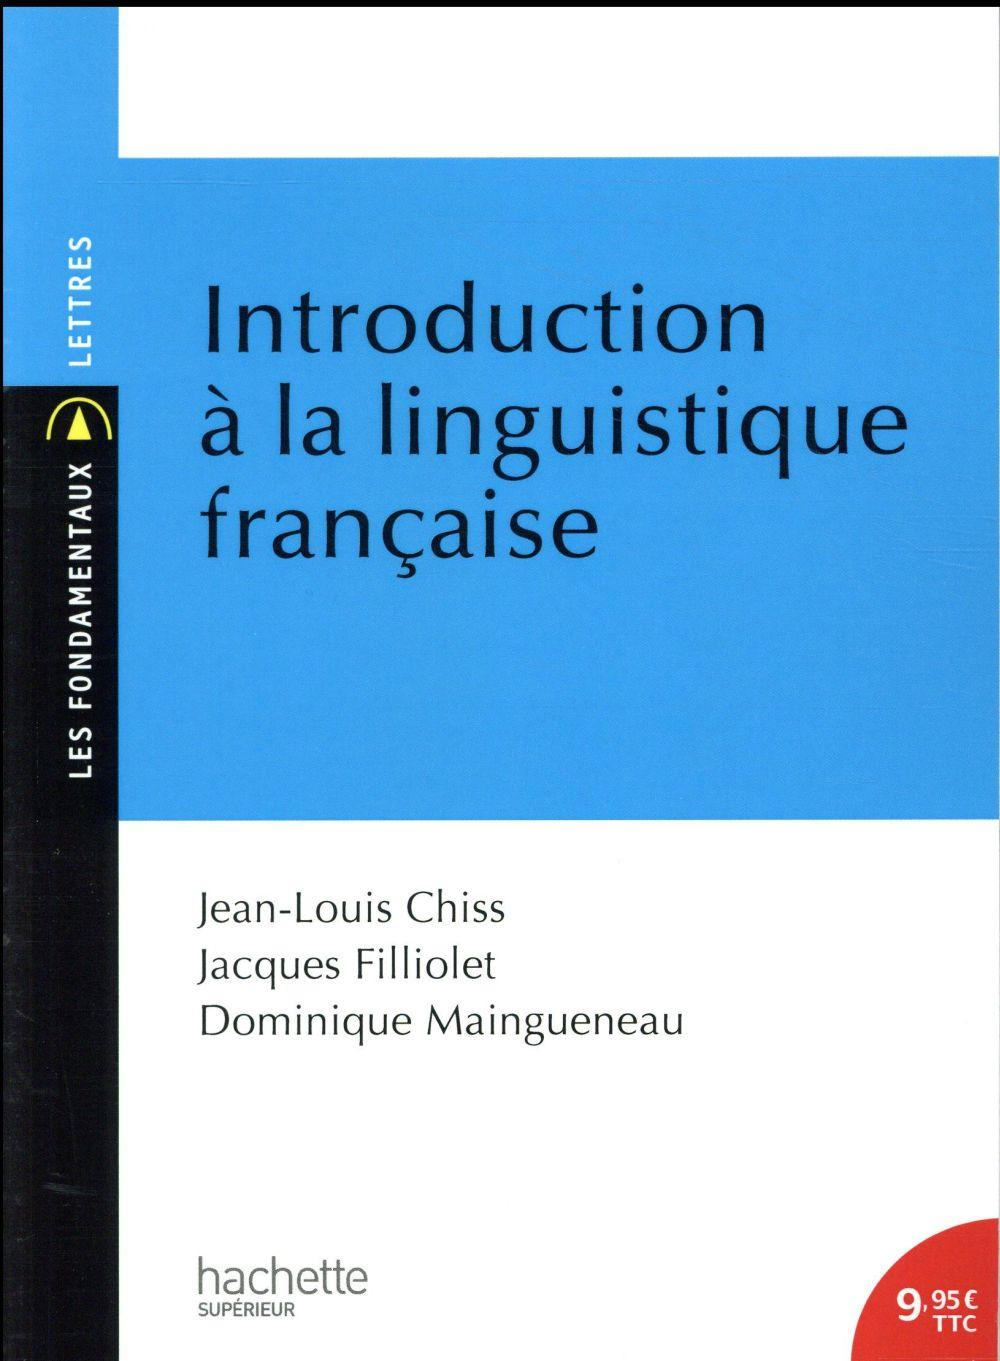 Introduction à la linguistique française  - Dominique Maingueneau  - Jean-Louis Chiss  - Jacques Filliolet